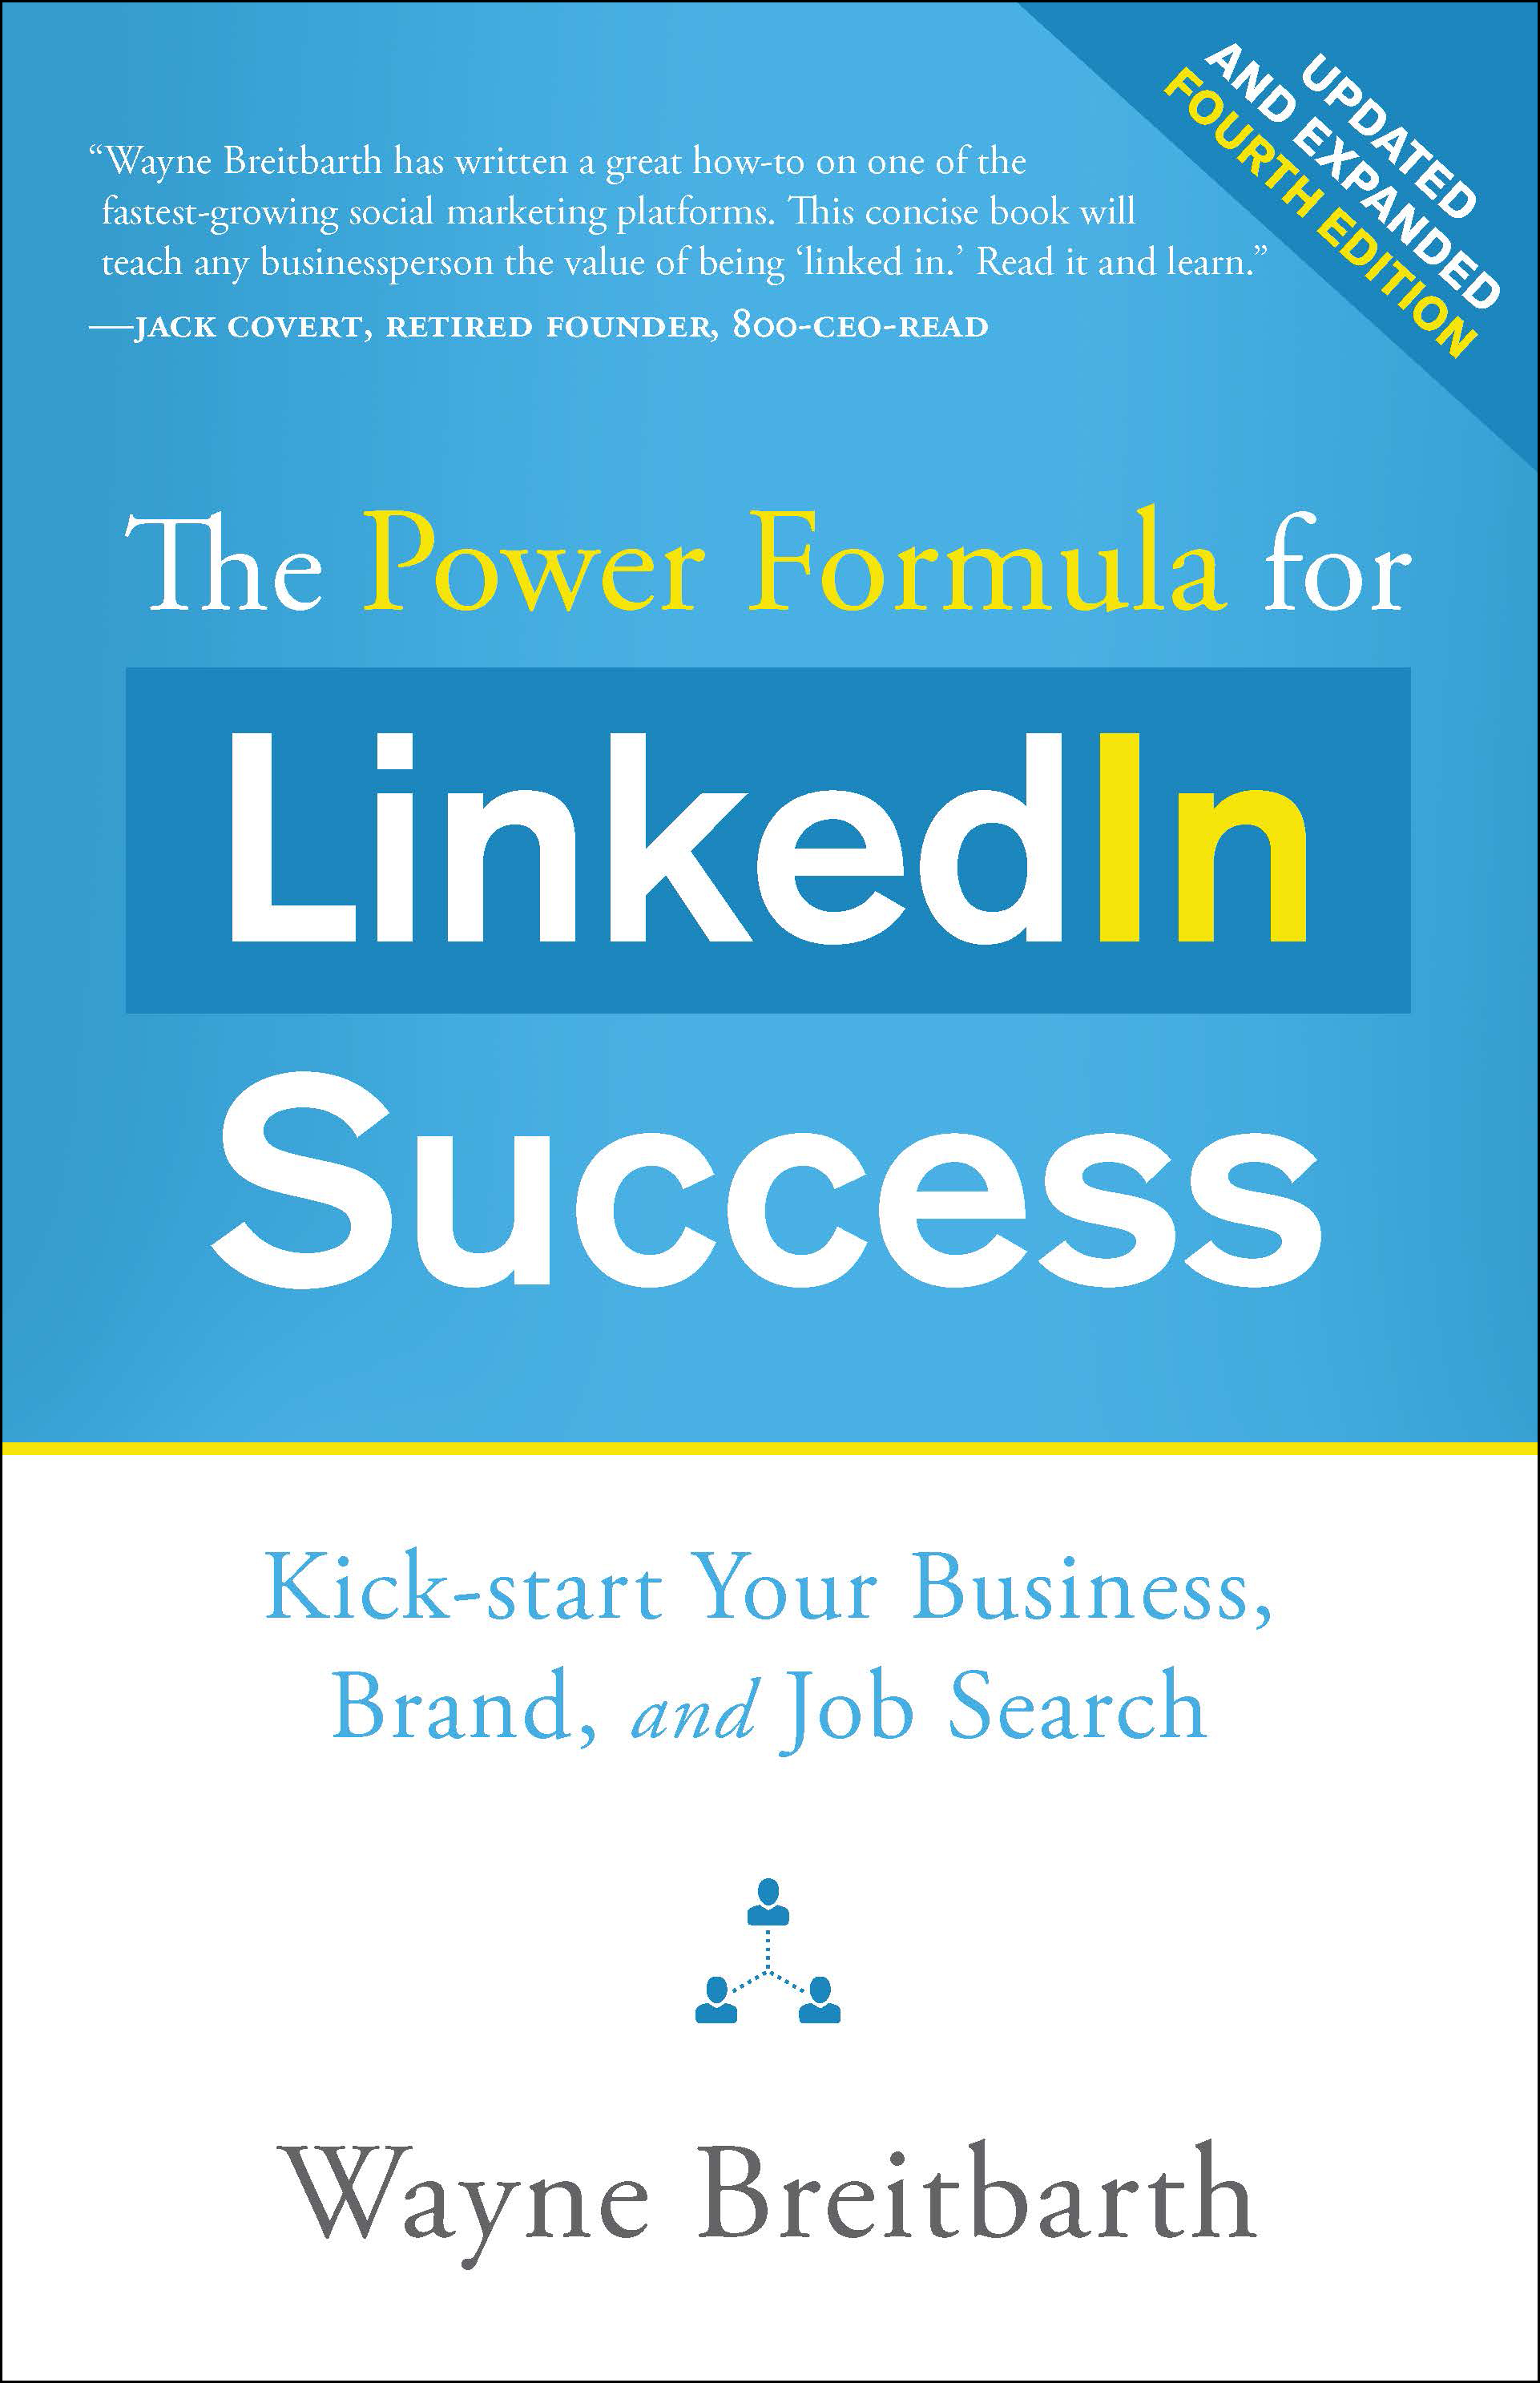 The Power Formula for LinkedIn Success by Wayne Breitbarth 3rd Edition